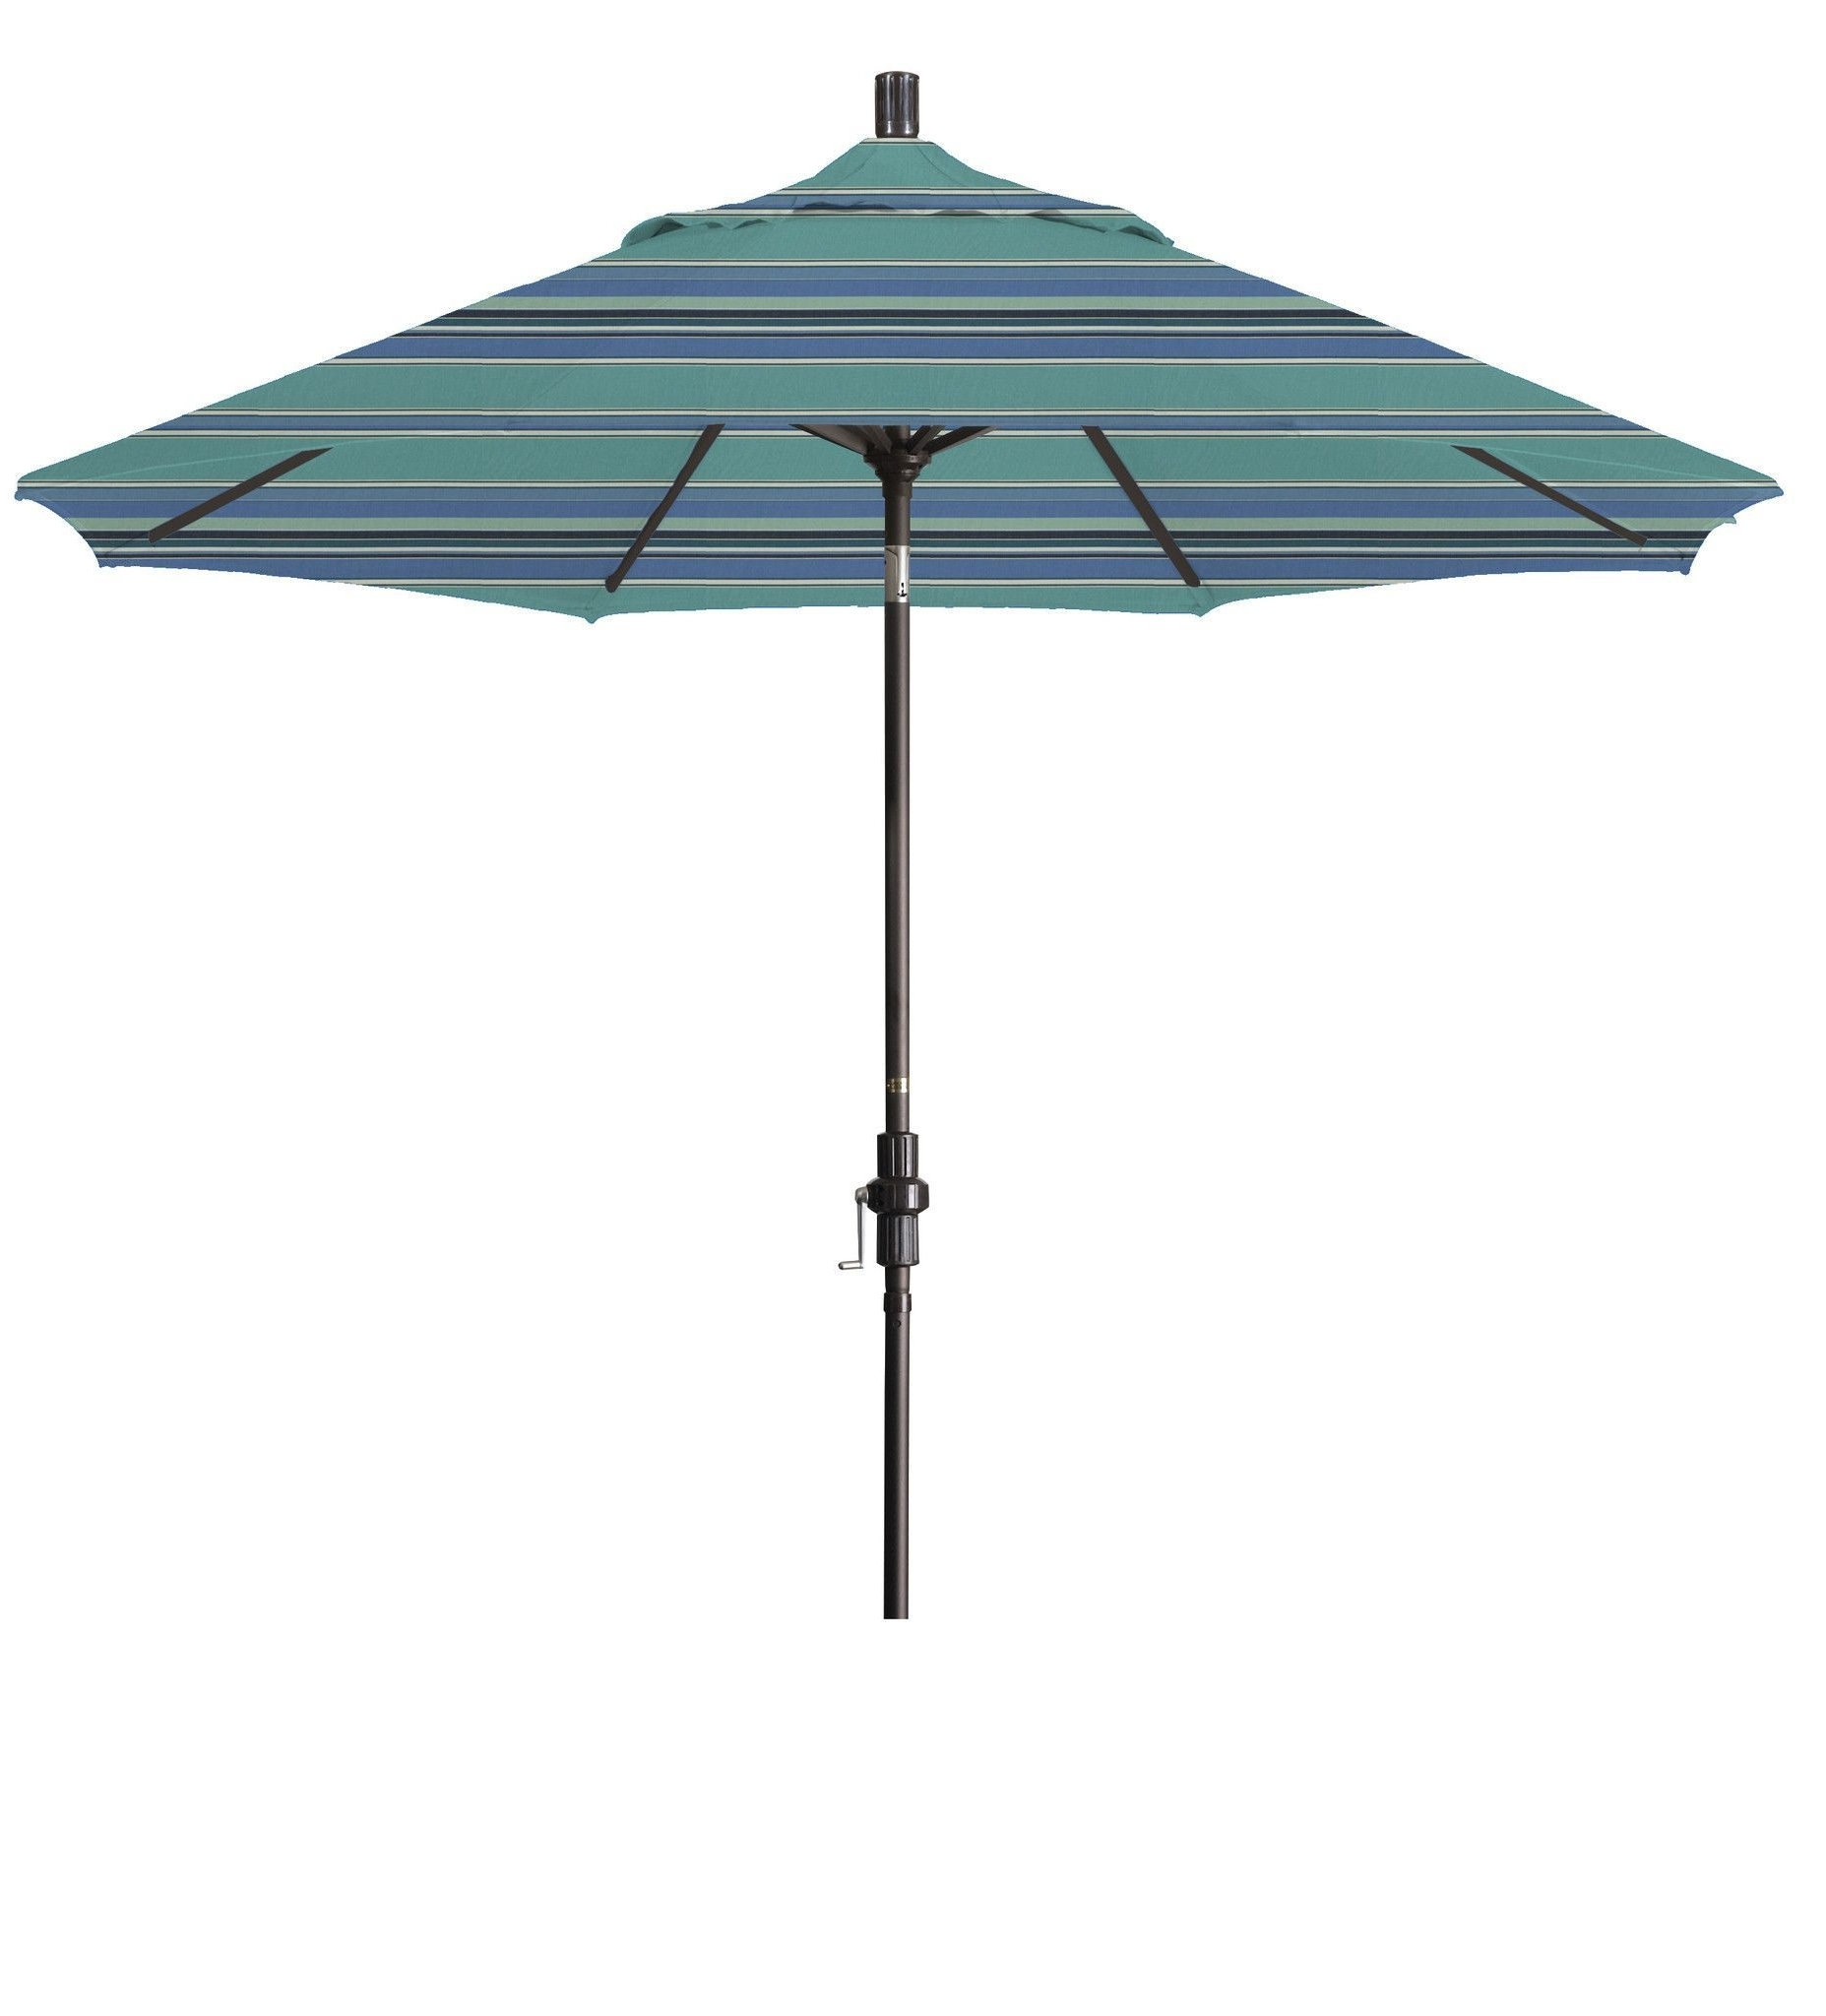 Eclipse Collection 9' Aluminum Market Umbrella Collar Tilt – Bronze Throughout Current Eclipse Patio Umbrellas (Gallery 4 of 20)